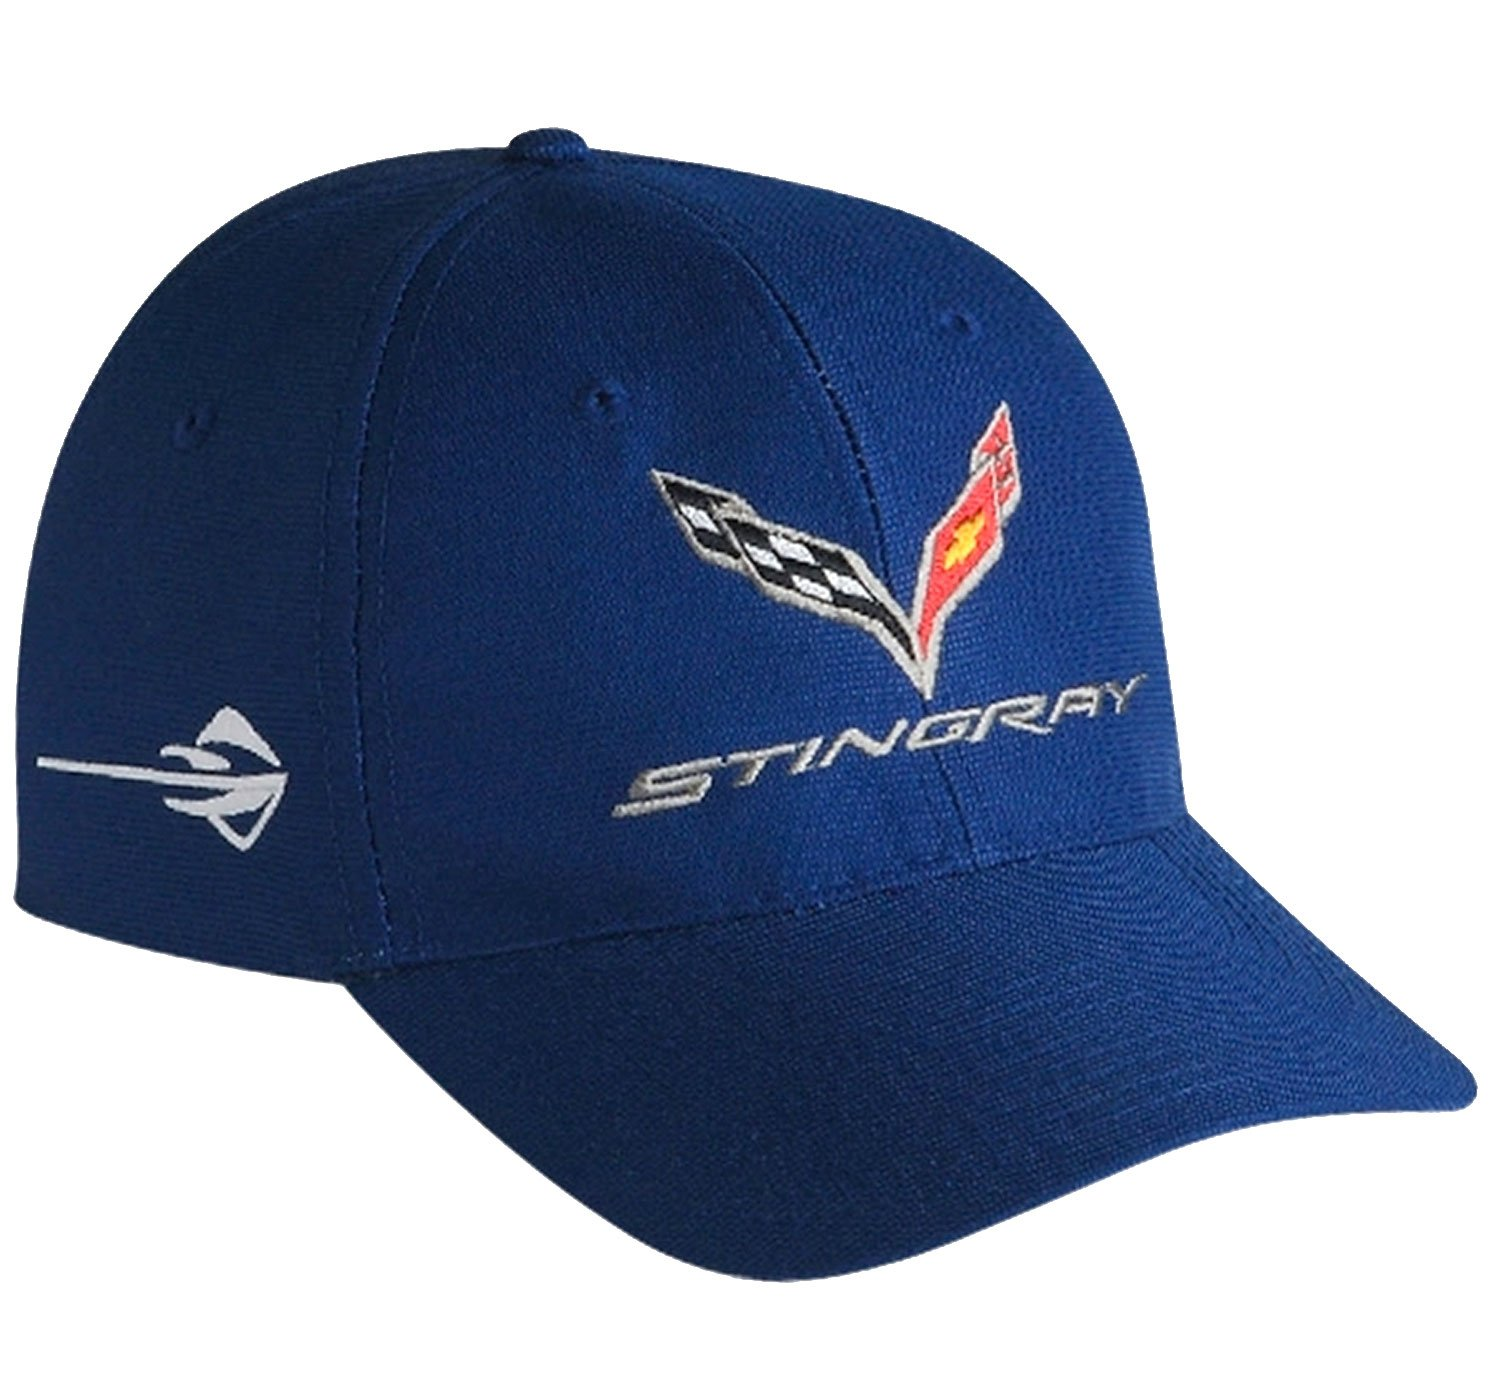 Gregs Automotive Corvette C7 Stingray Hat Blue Made in USA Bundle with Driving Style Decal Greg/'s Automotive